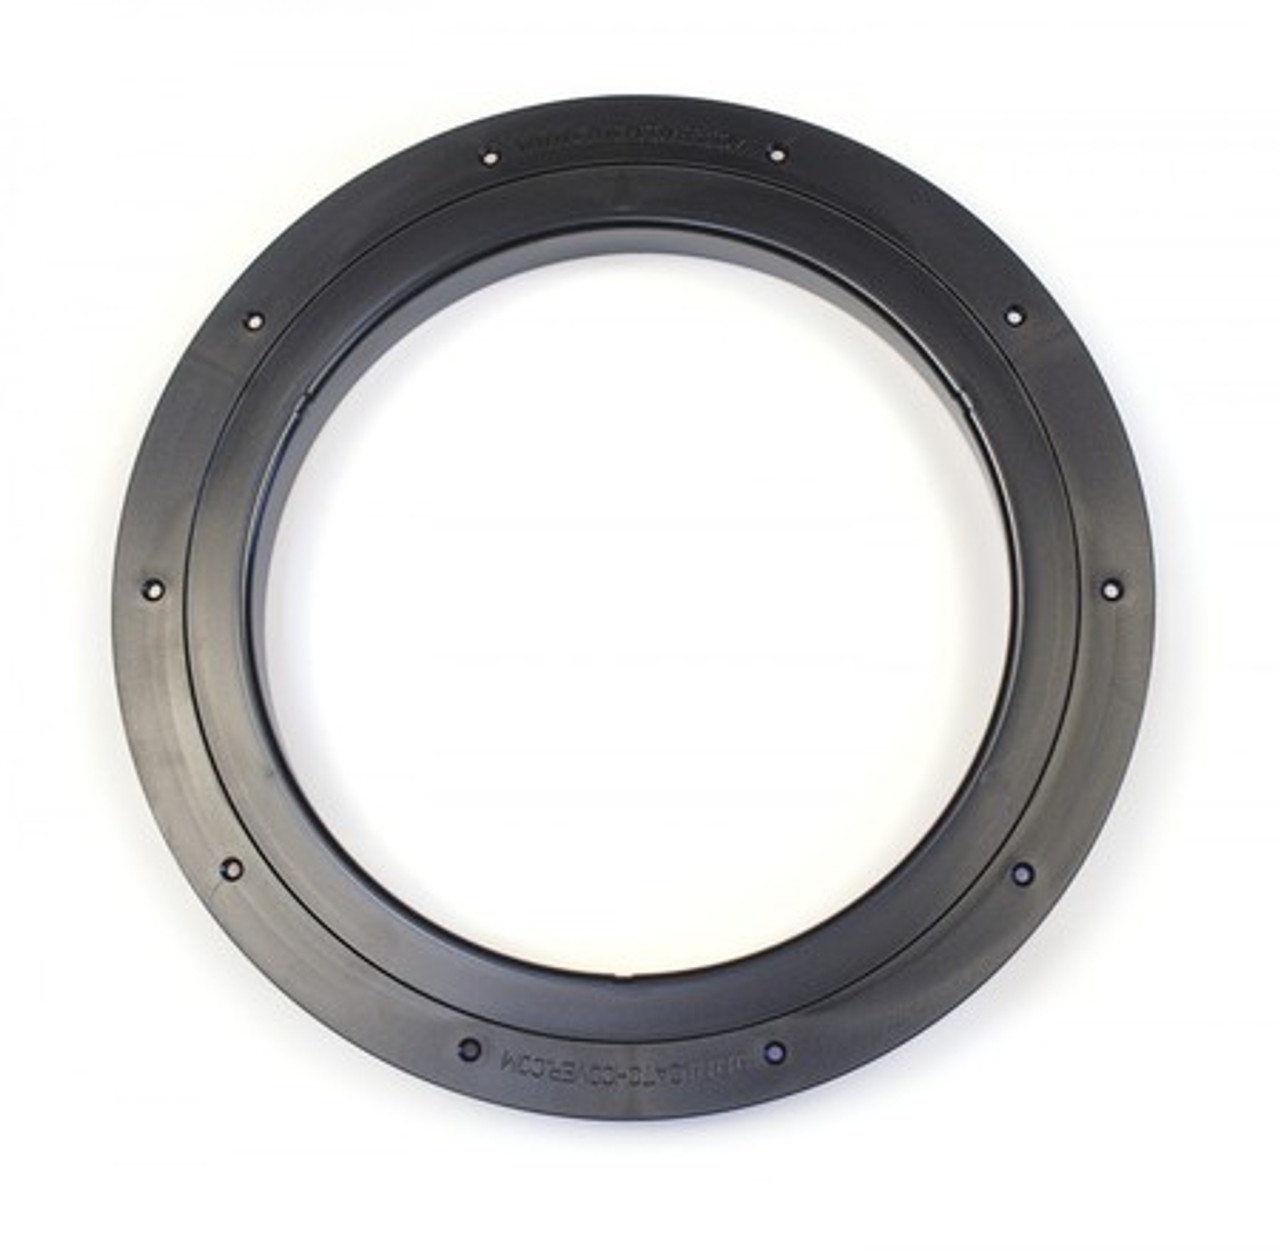 Round CatchCover Round Mounting Ring